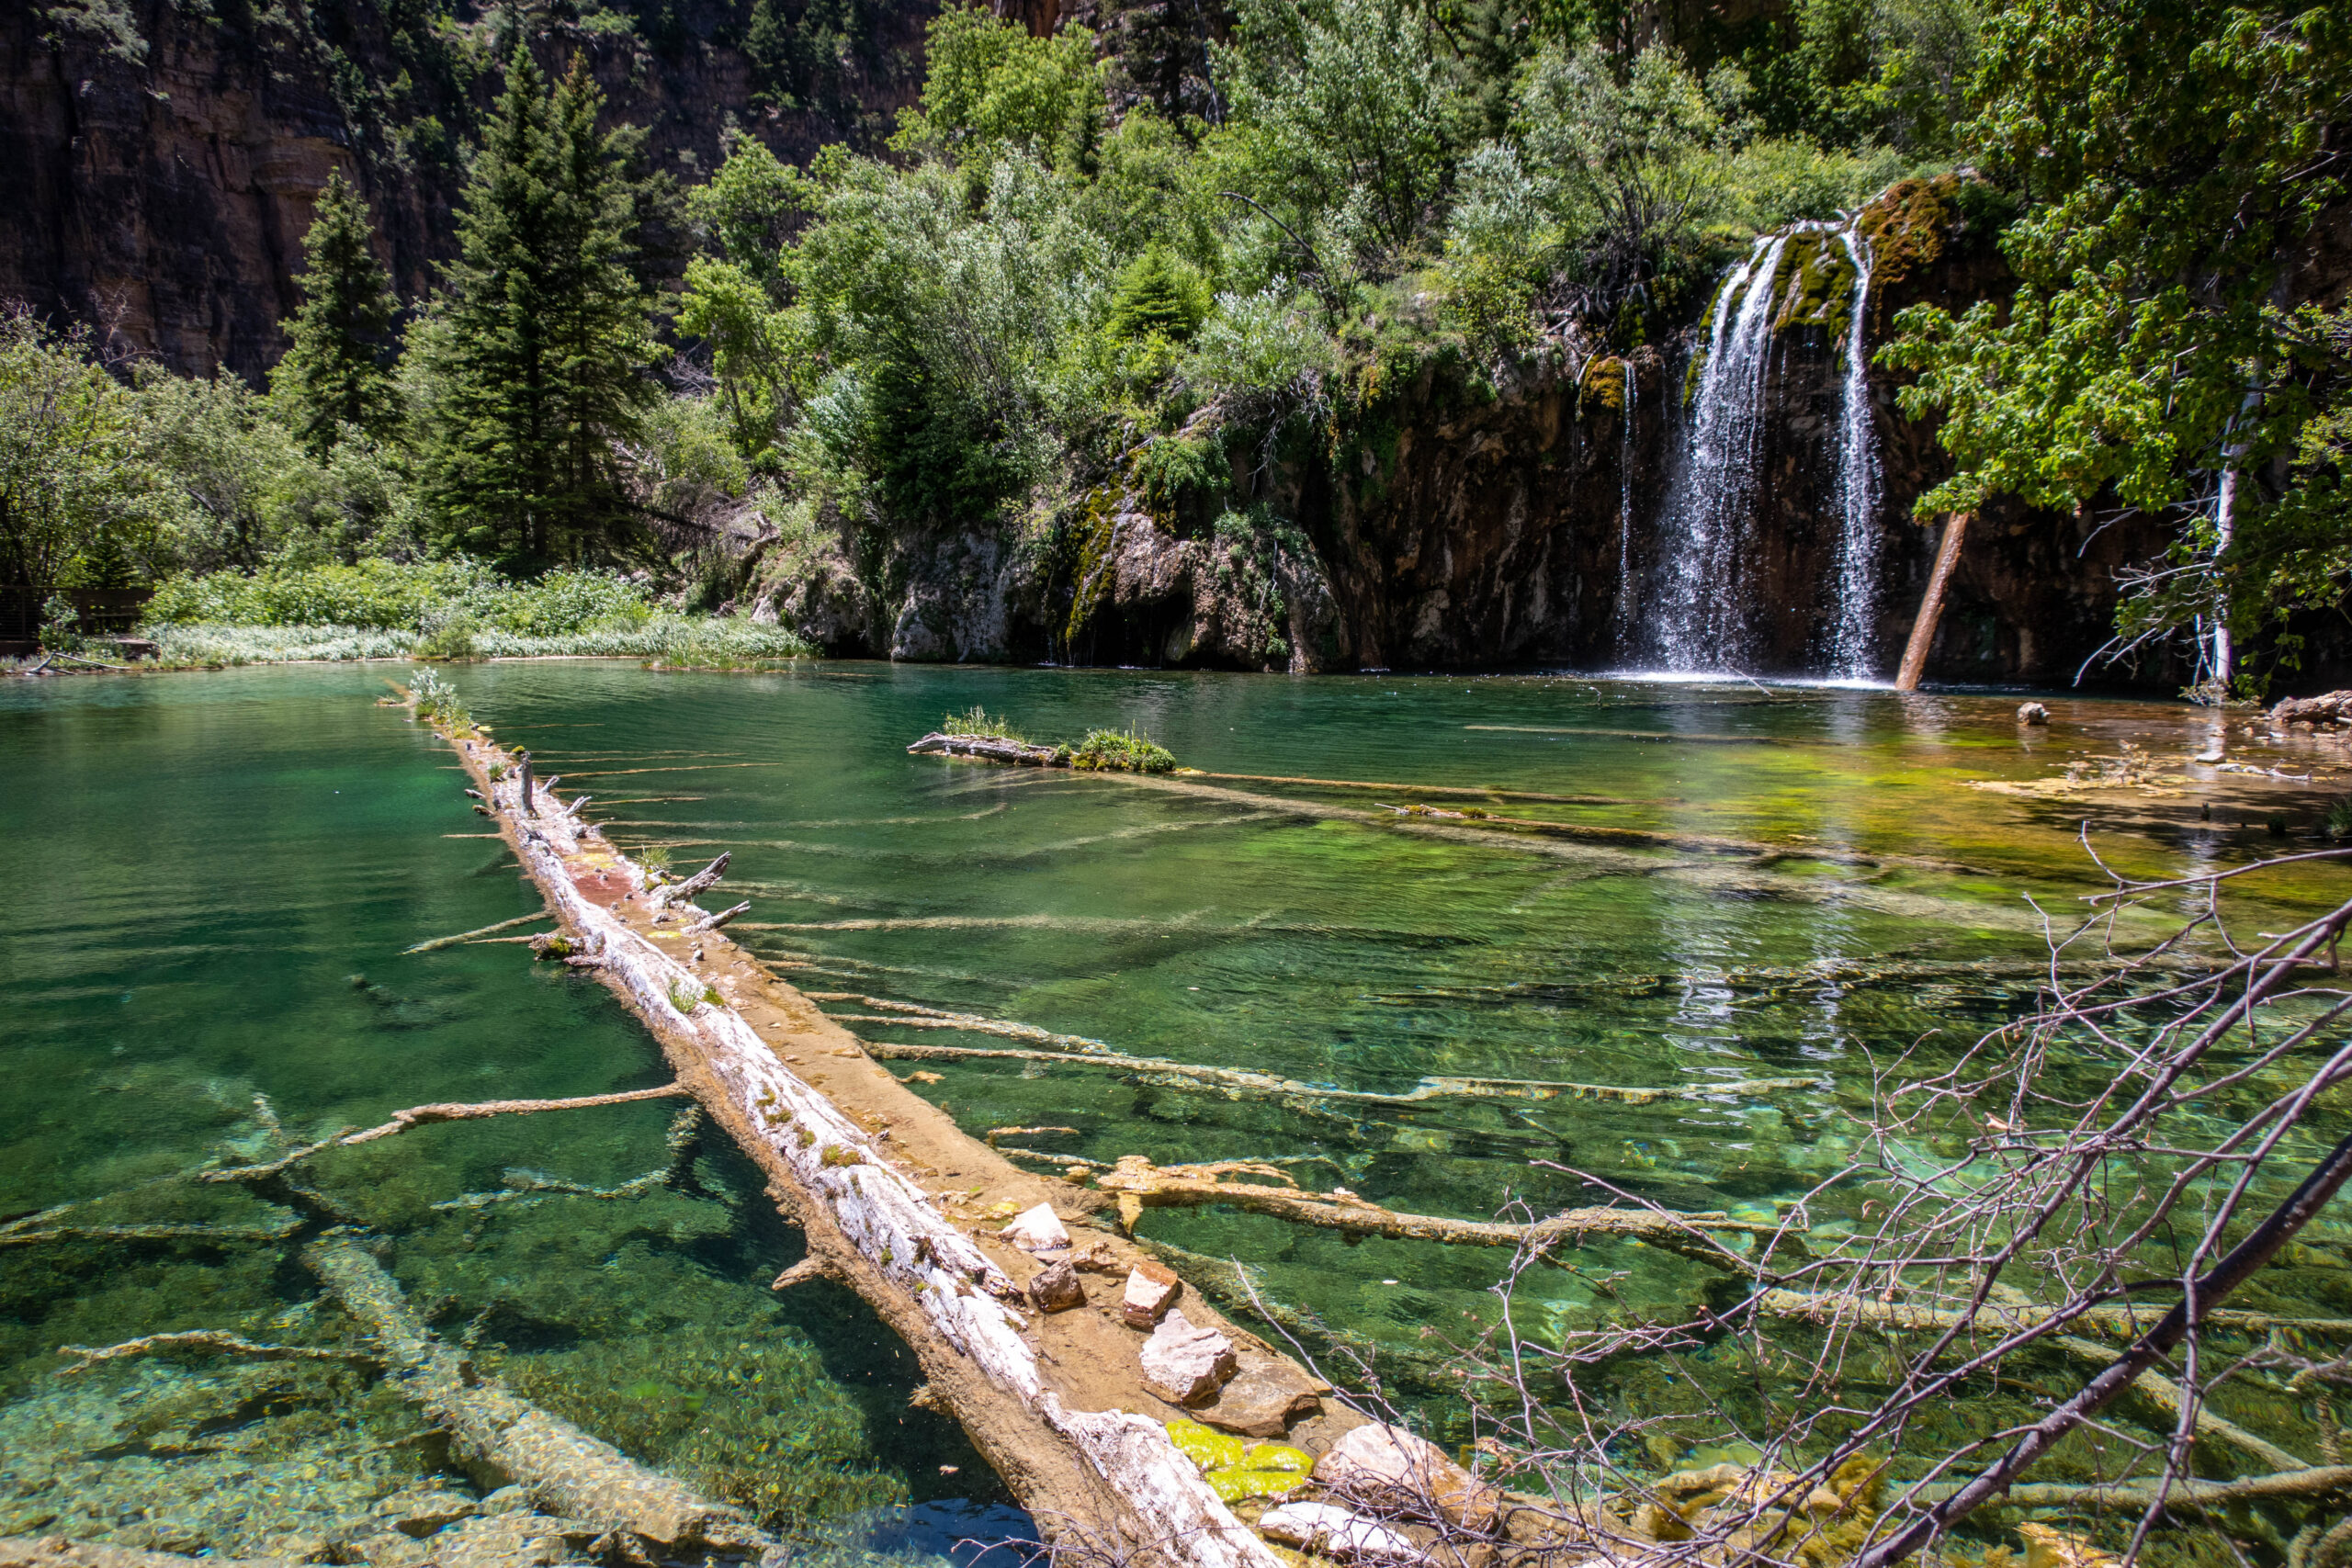 Hanging Lake as it appeared June 14, 2020.